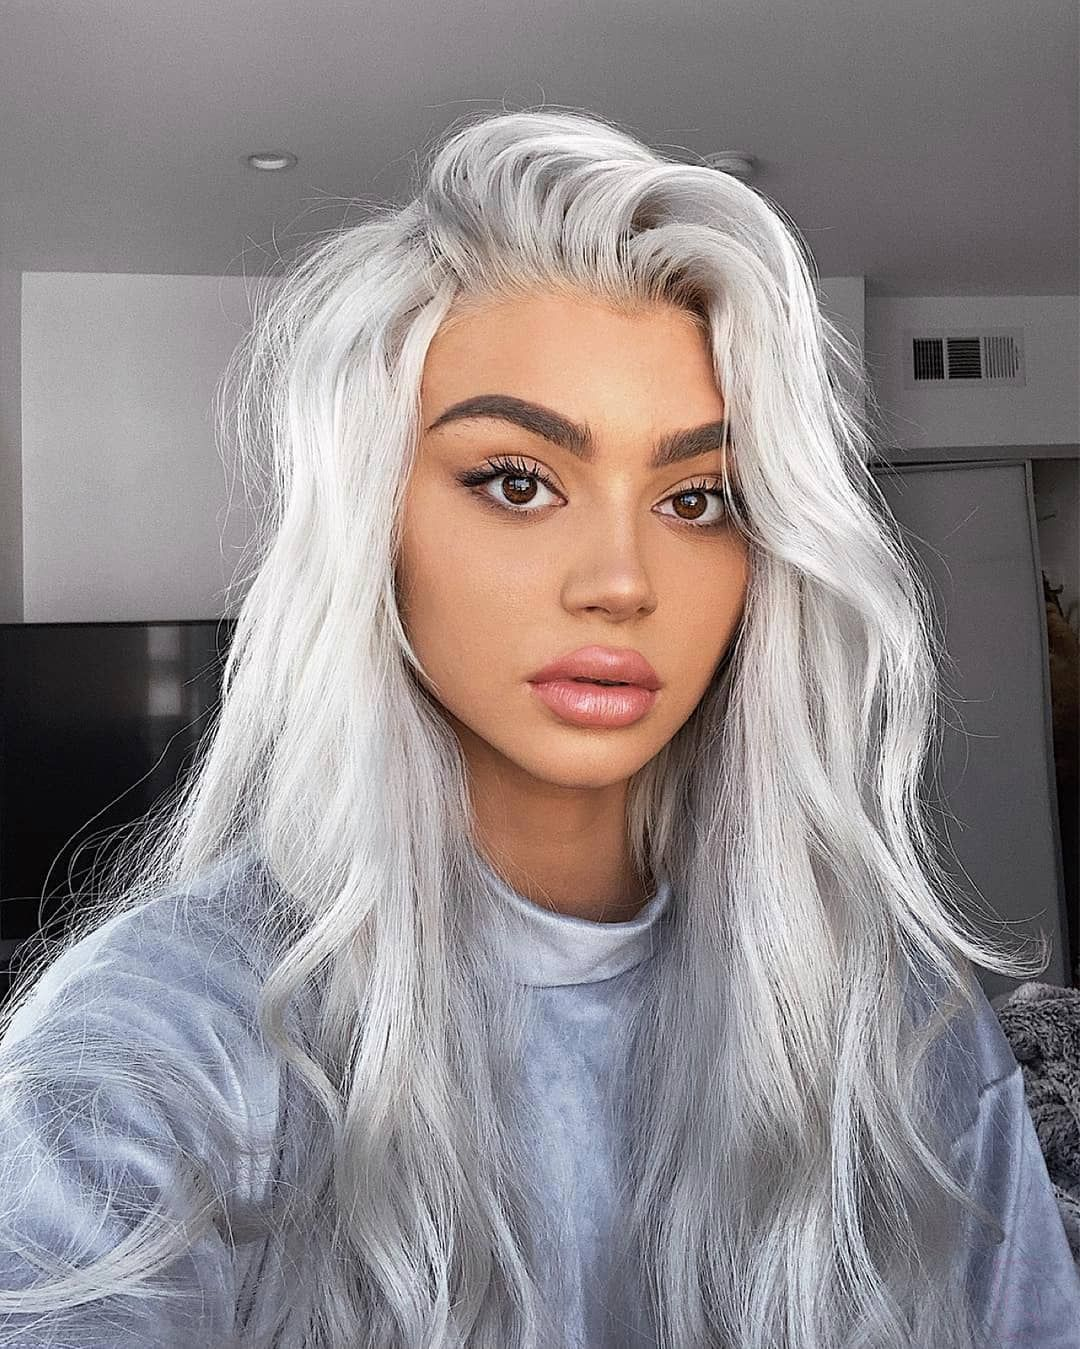 Salon Republic On Instagram When Your Hair Becomes Its Own Super Hero Silver Storm Color Ashleyhairandma White Hair Color Hair Styles Hair Color